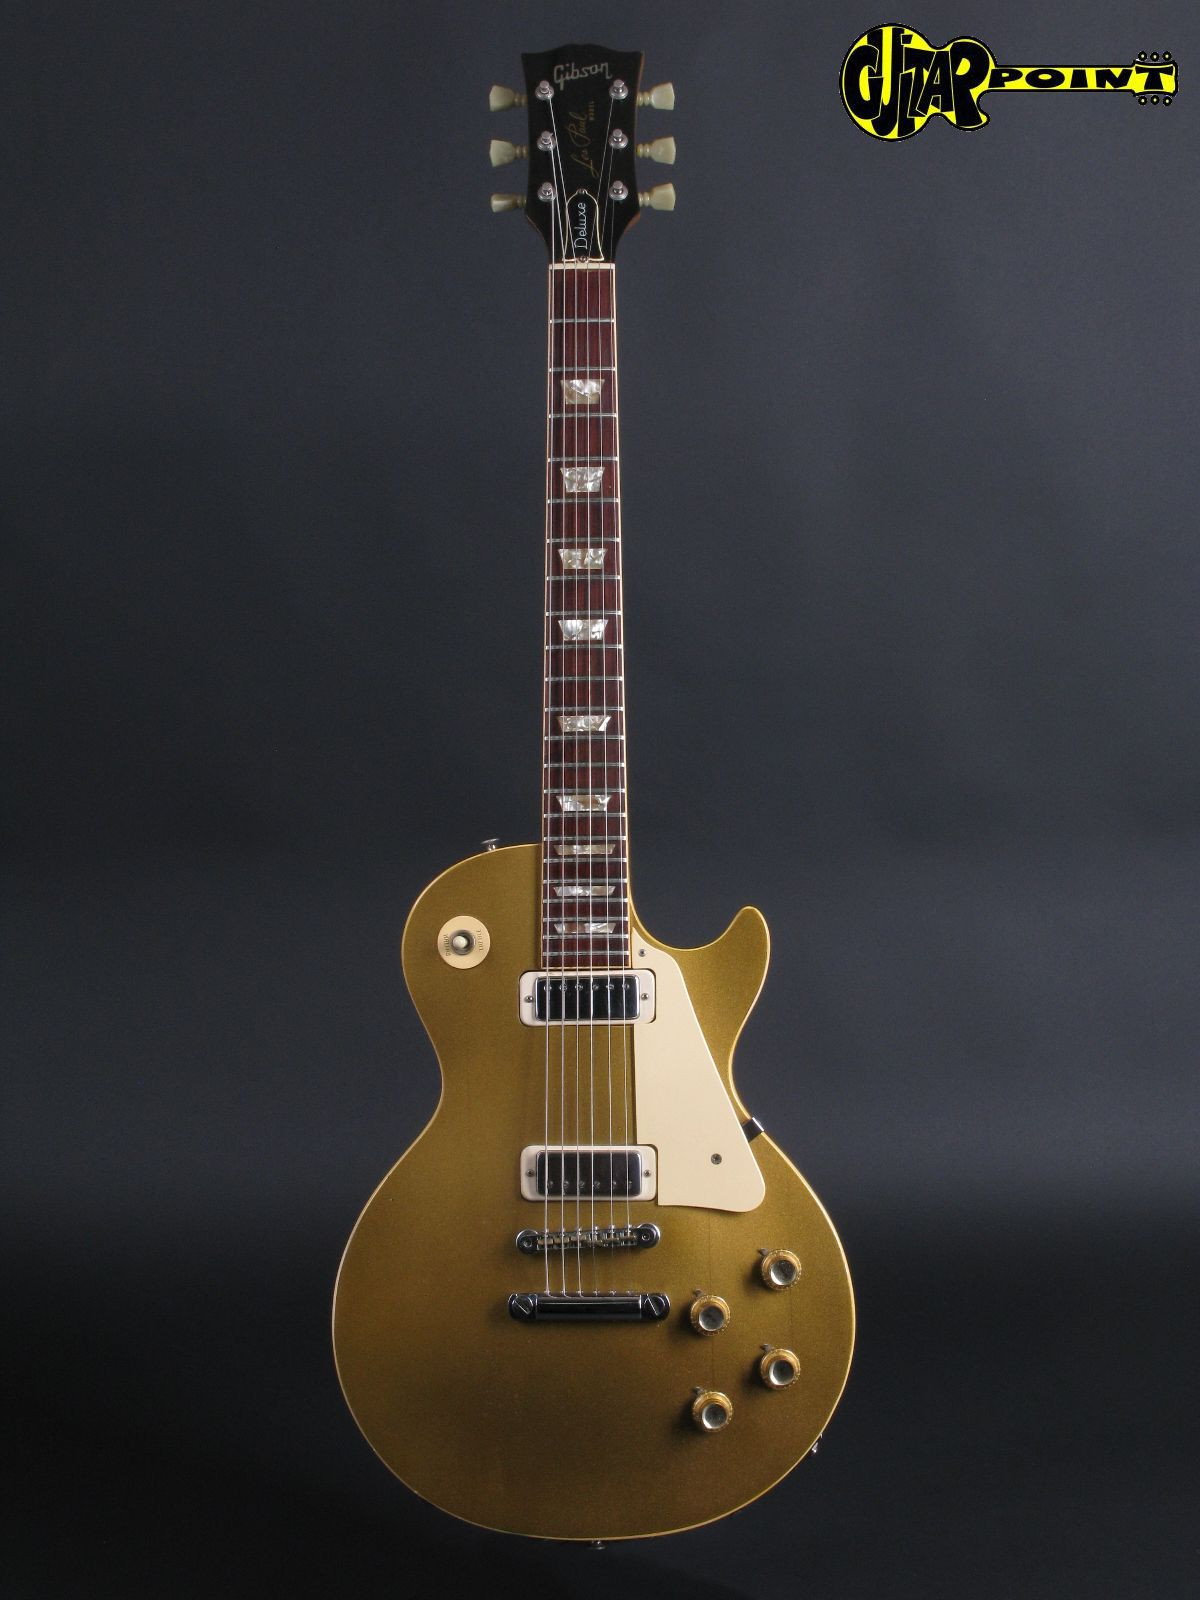 Gibson Les Paul Gold top Magnífico Gibson Les Paul Deluxe Goldtop 1974 Gold top Guitar for Of 45  Innovador Gibson Les Paul Gold top